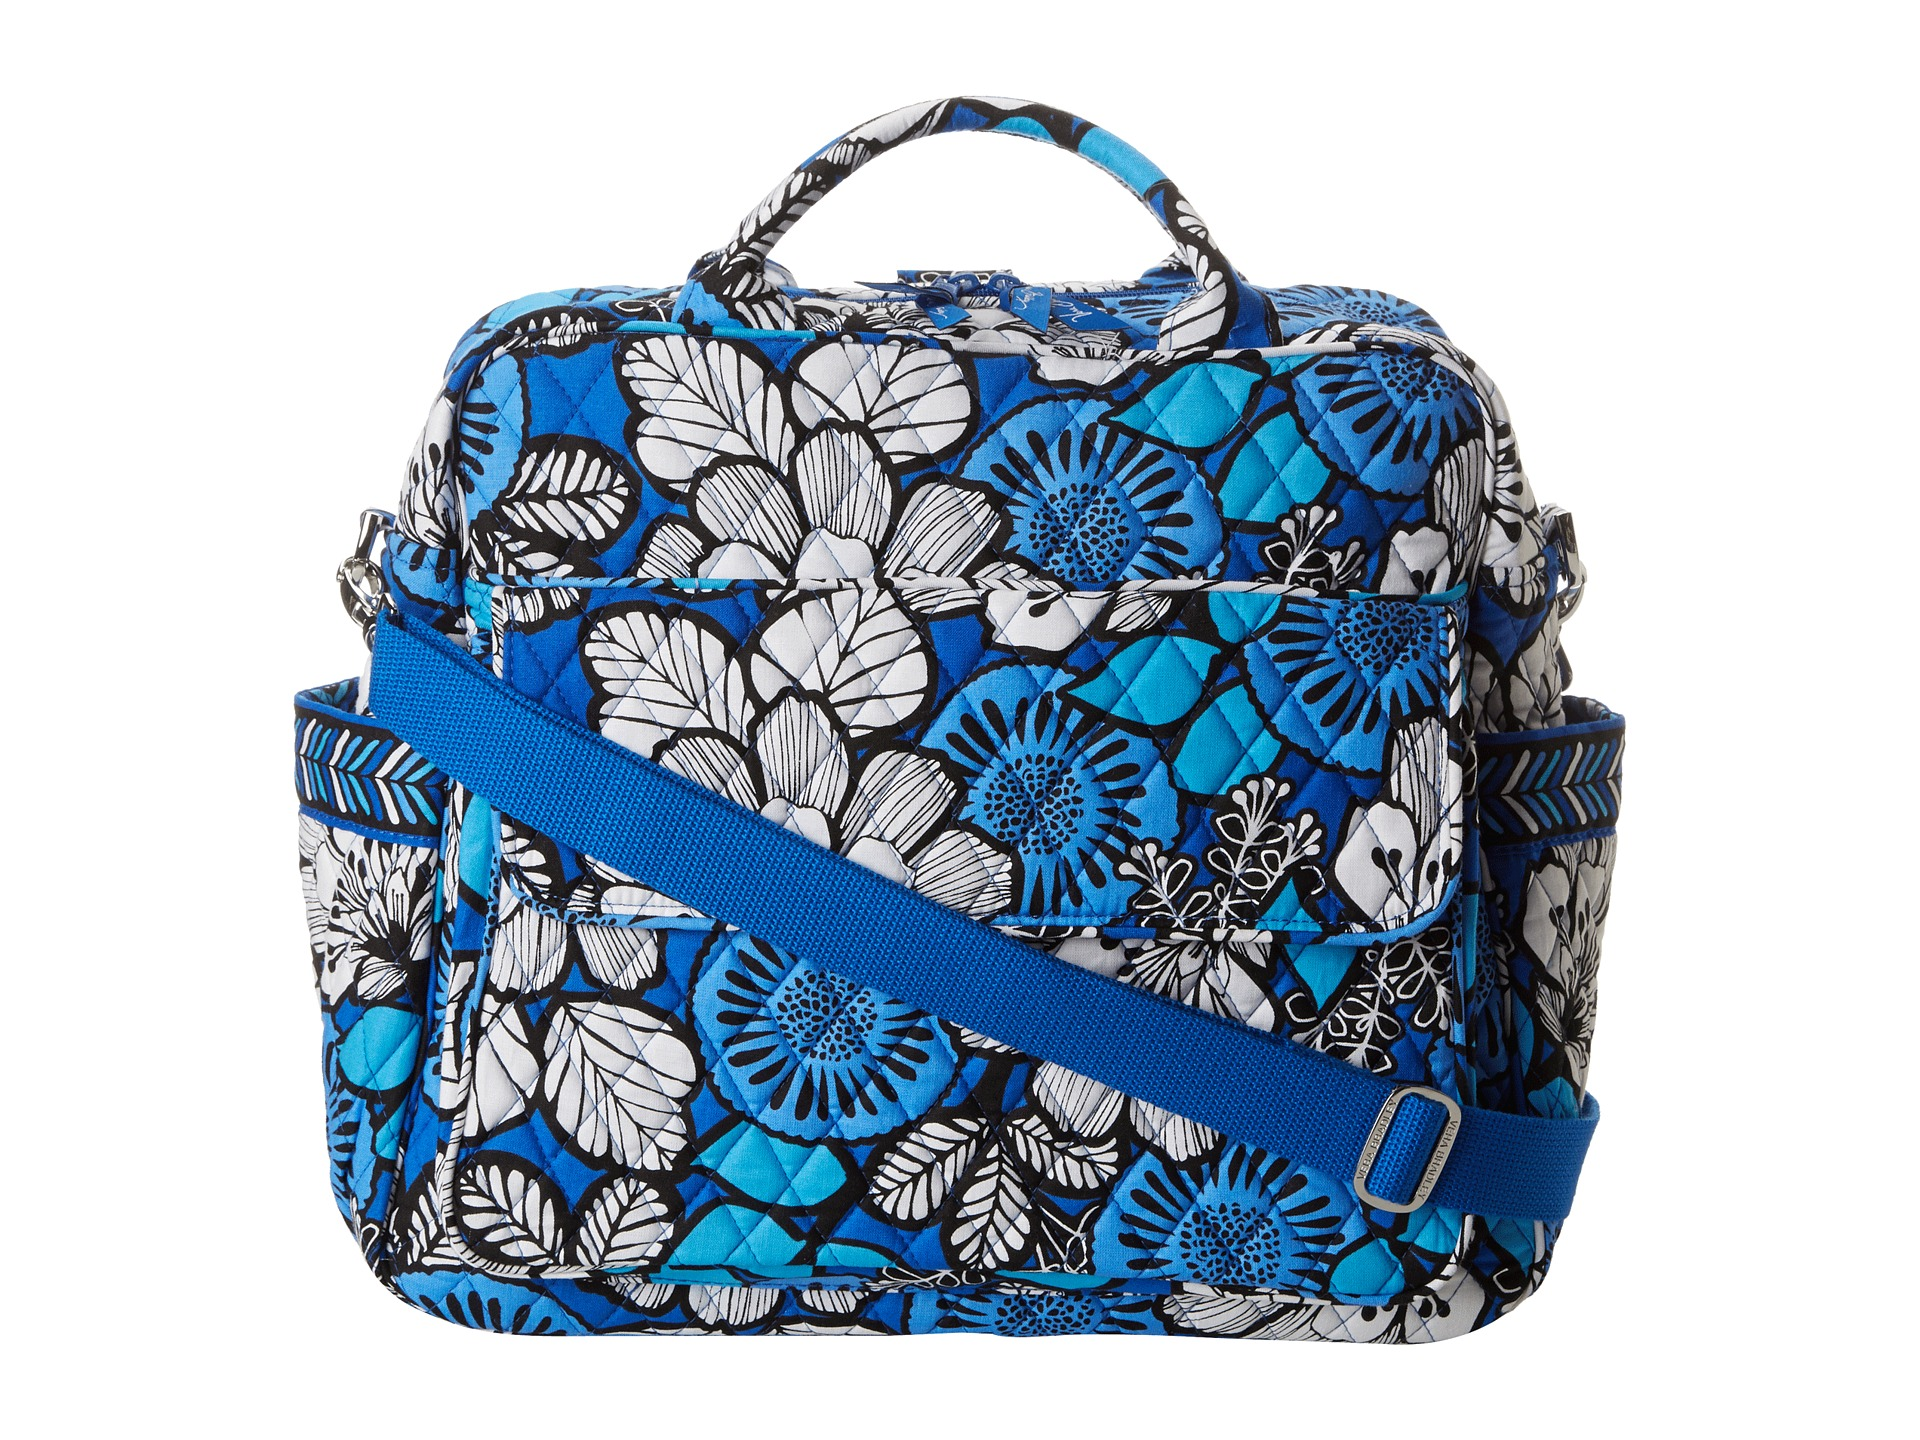 vera bradley convertible baby bag blue bayou shipped free at zappos. Black Bedroom Furniture Sets. Home Design Ideas